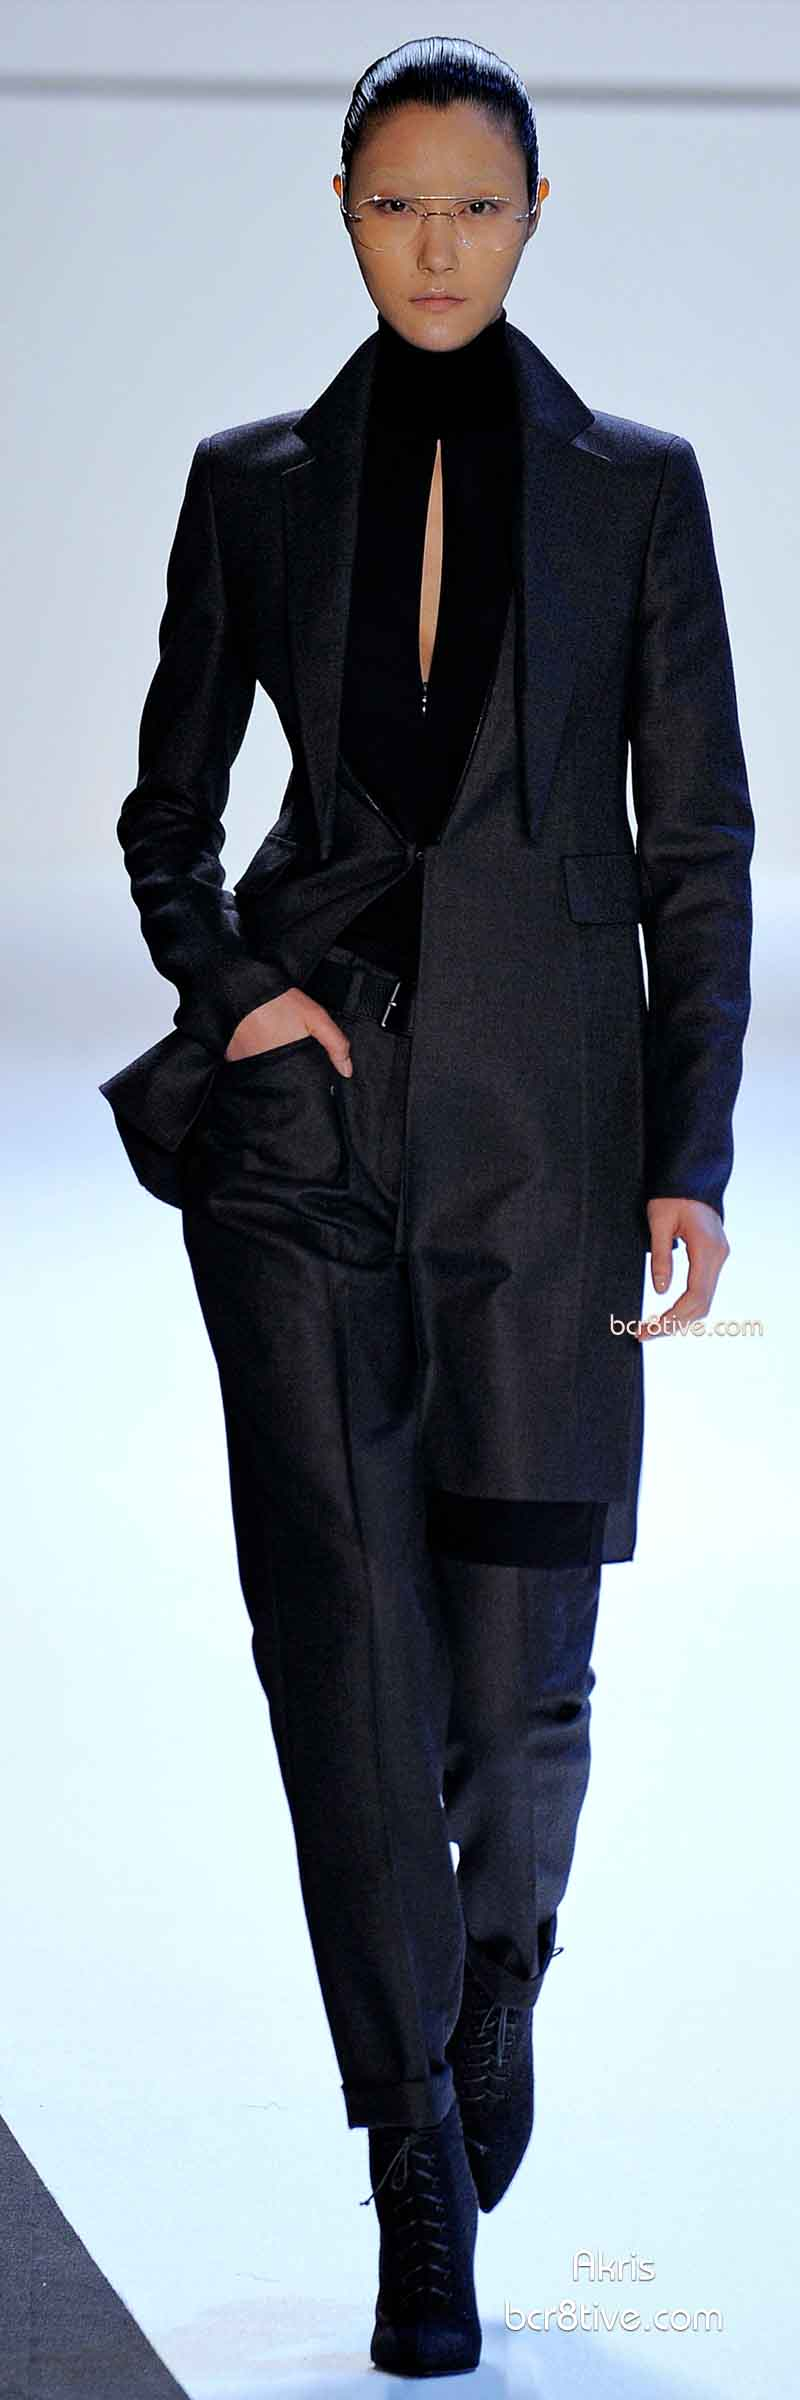 Fall 2014 Menswear Inspired Fashion - Akris